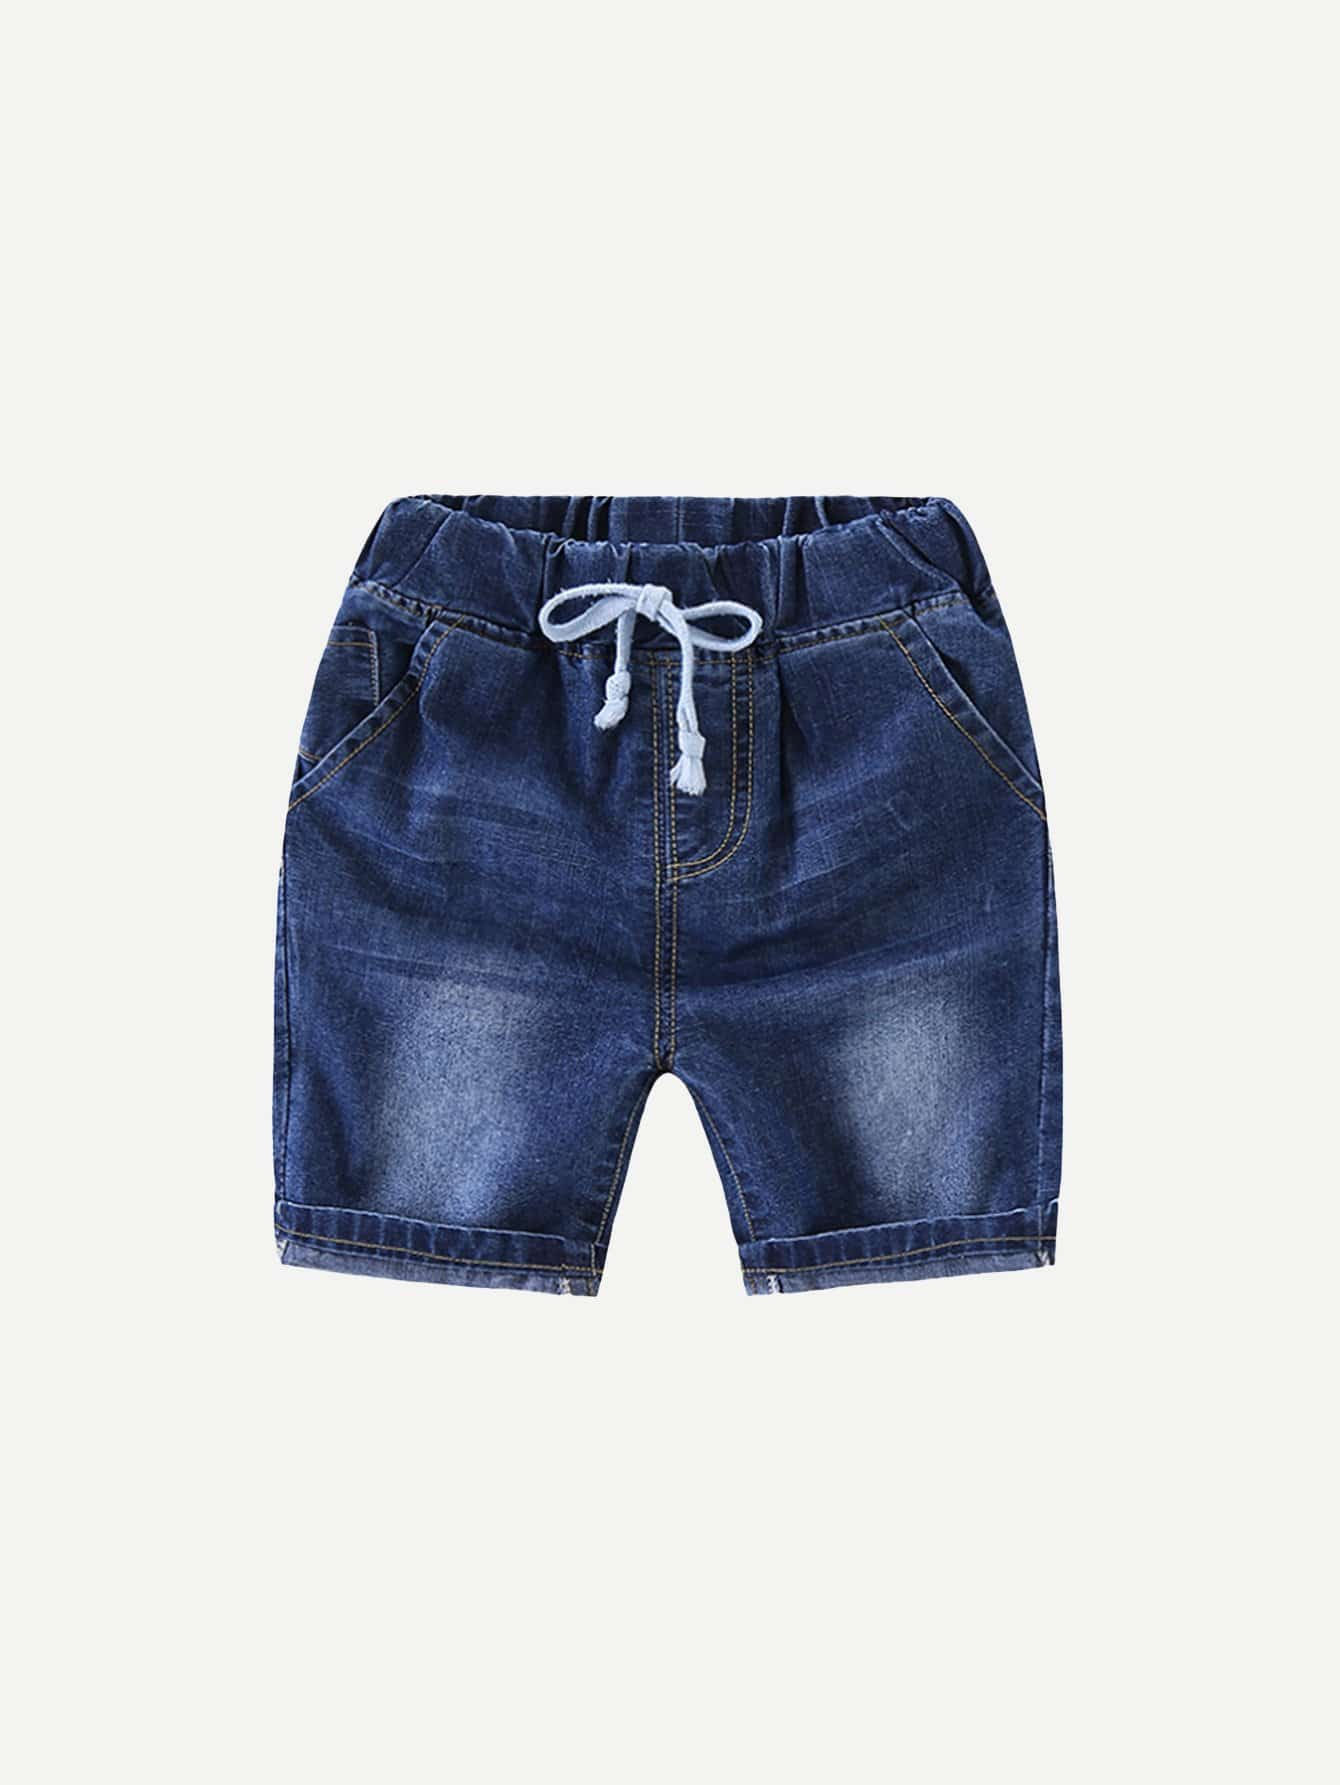 Boys Roll Hem Drawstring Denim Shorts цена 2017